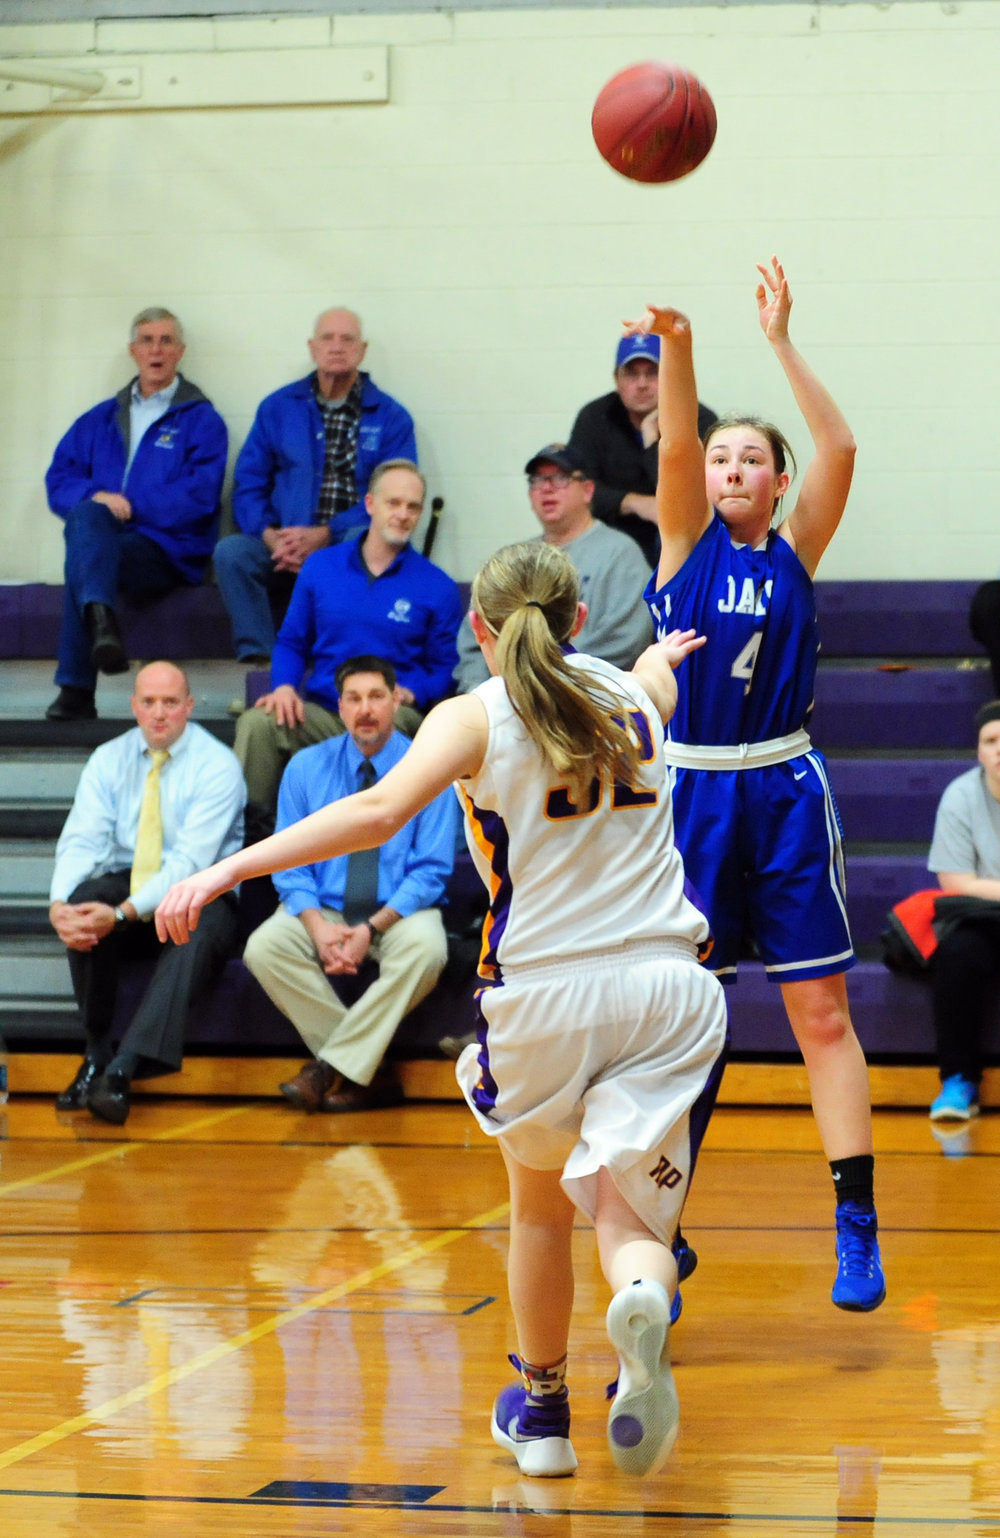 NICK INGRAM/Citizen photo West Platte junior Rachel Heili (4) takes a jump shot over North Platte's Grace Rice on Friday, Jan. 27 in the fifth-place game of the North Platte Invitational at North Platte Junior High in Dearborn, Mo.